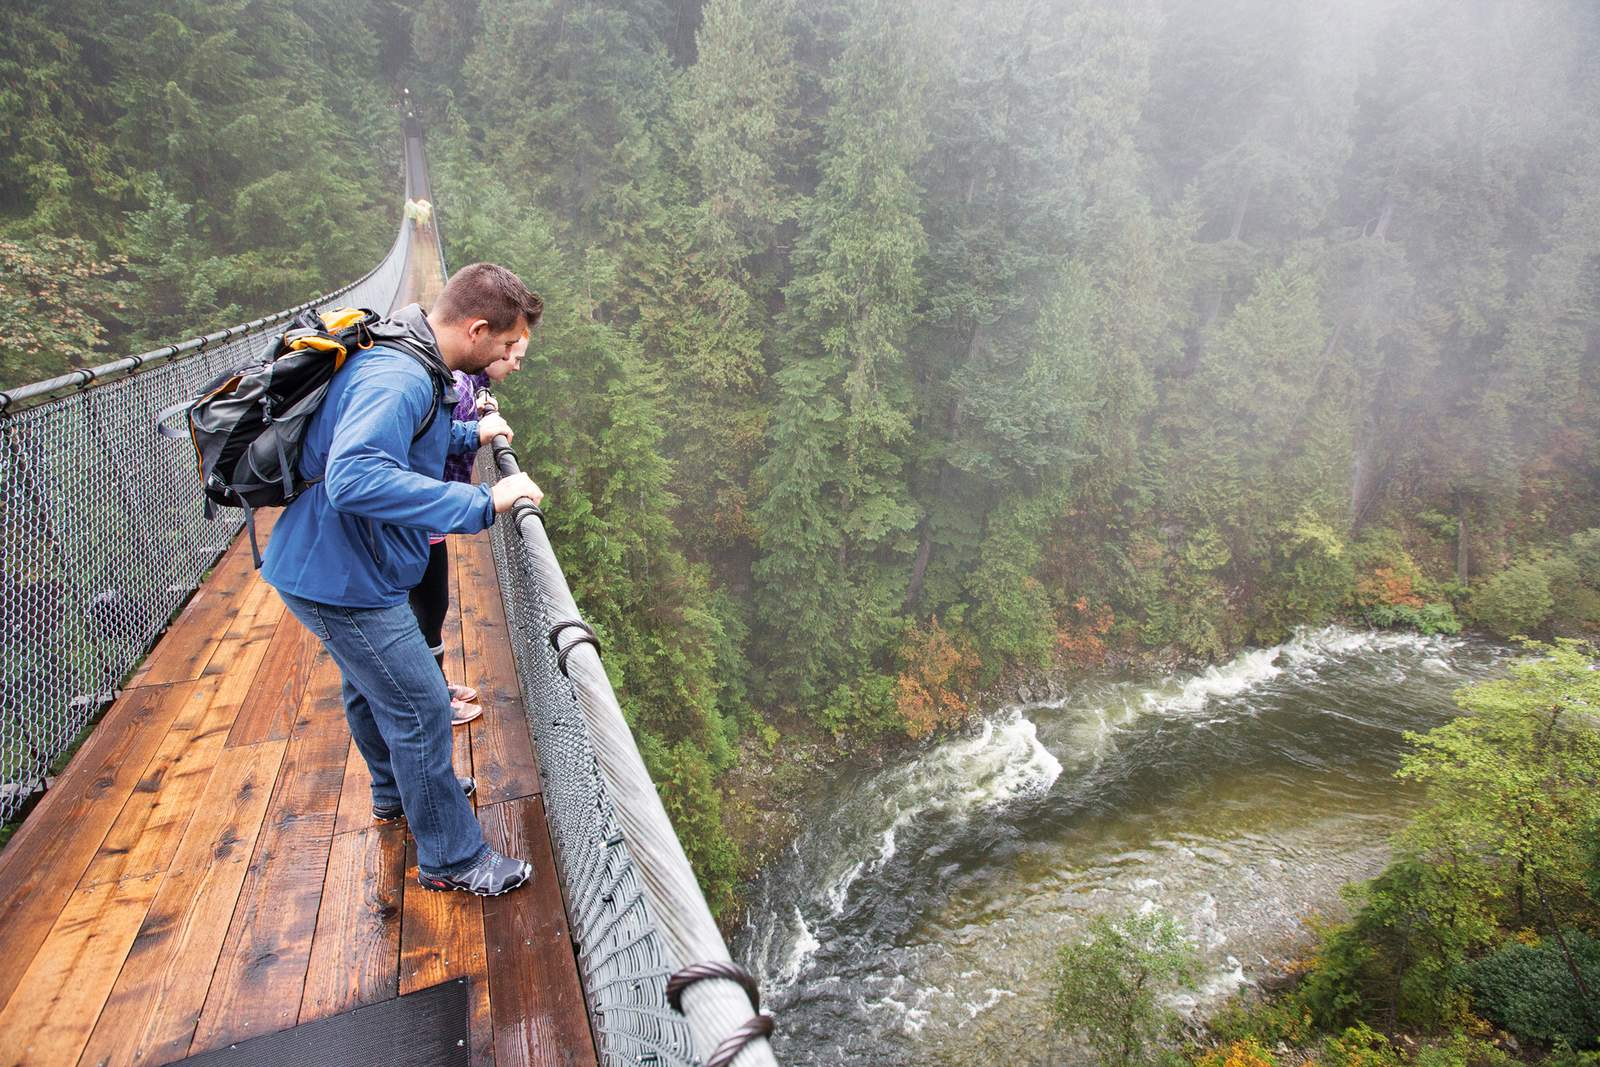 Ein Veregneter Tag im Capilano Suspension Bridge Park, Vancouver